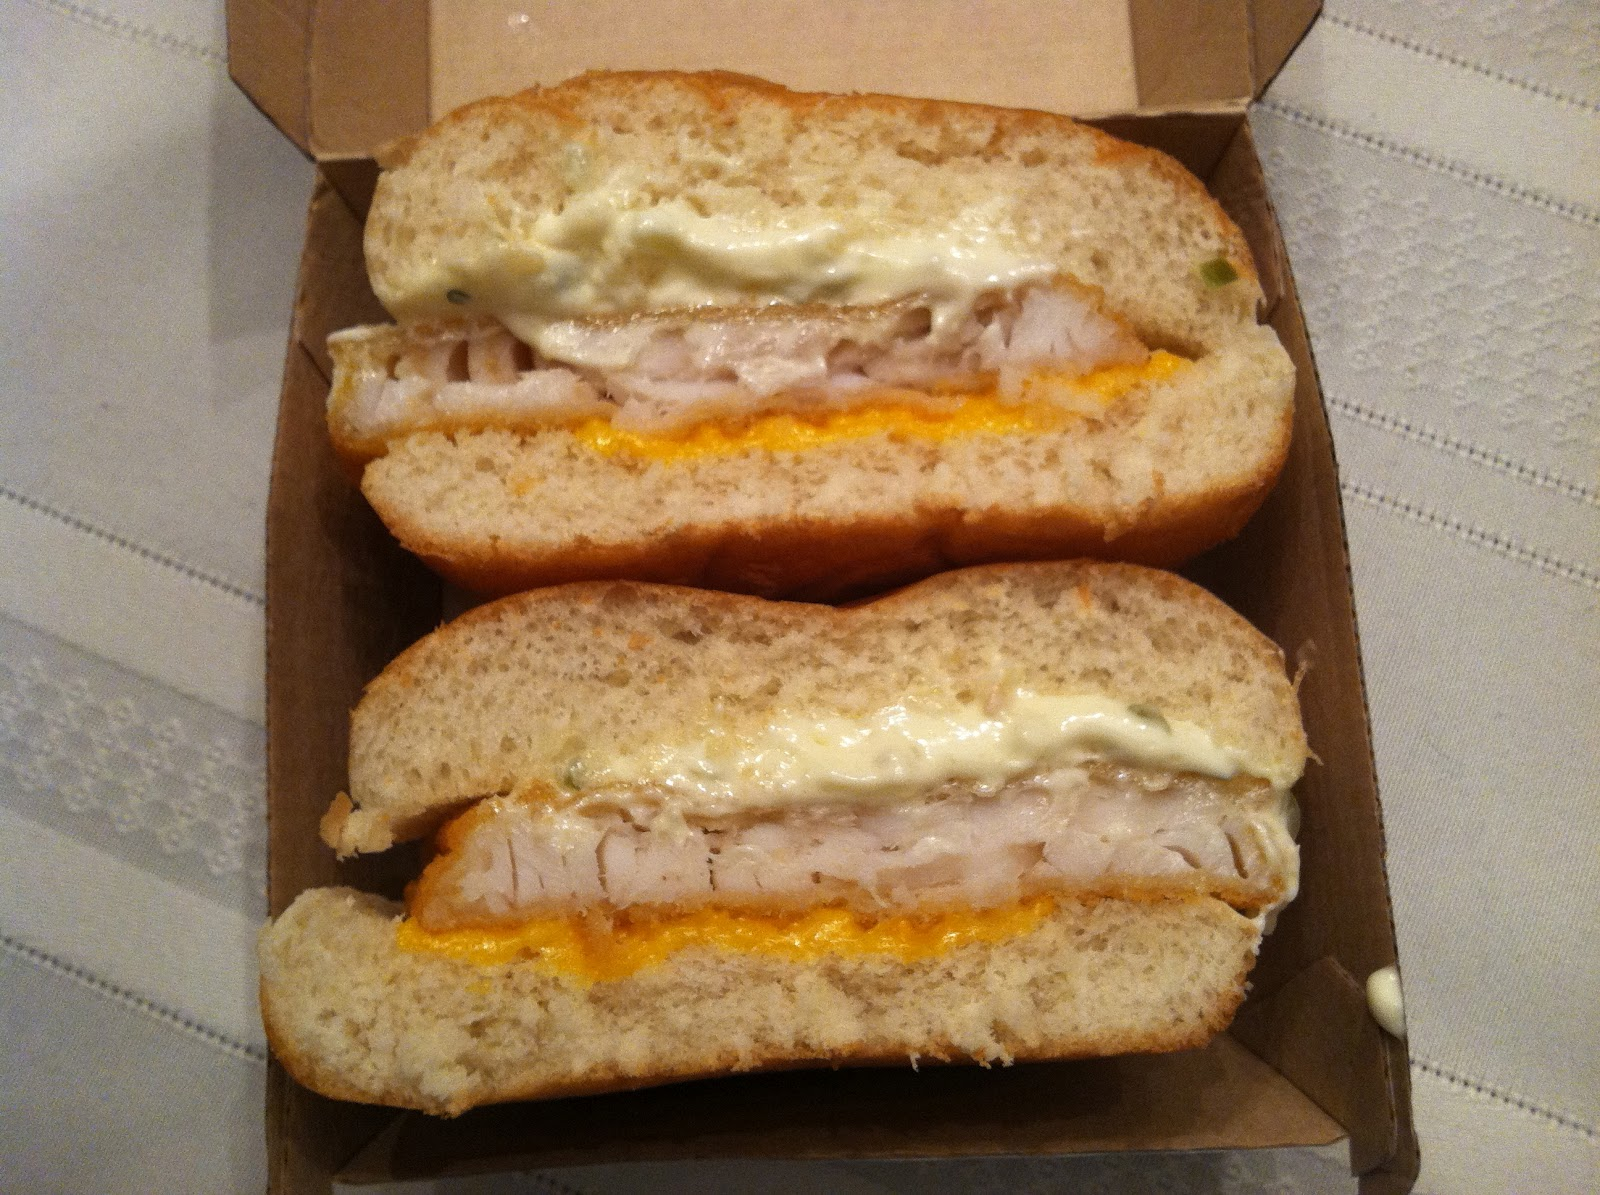 Mcdonald 39 s filet o fish review fast food geek for Mcdonalds fish fillet